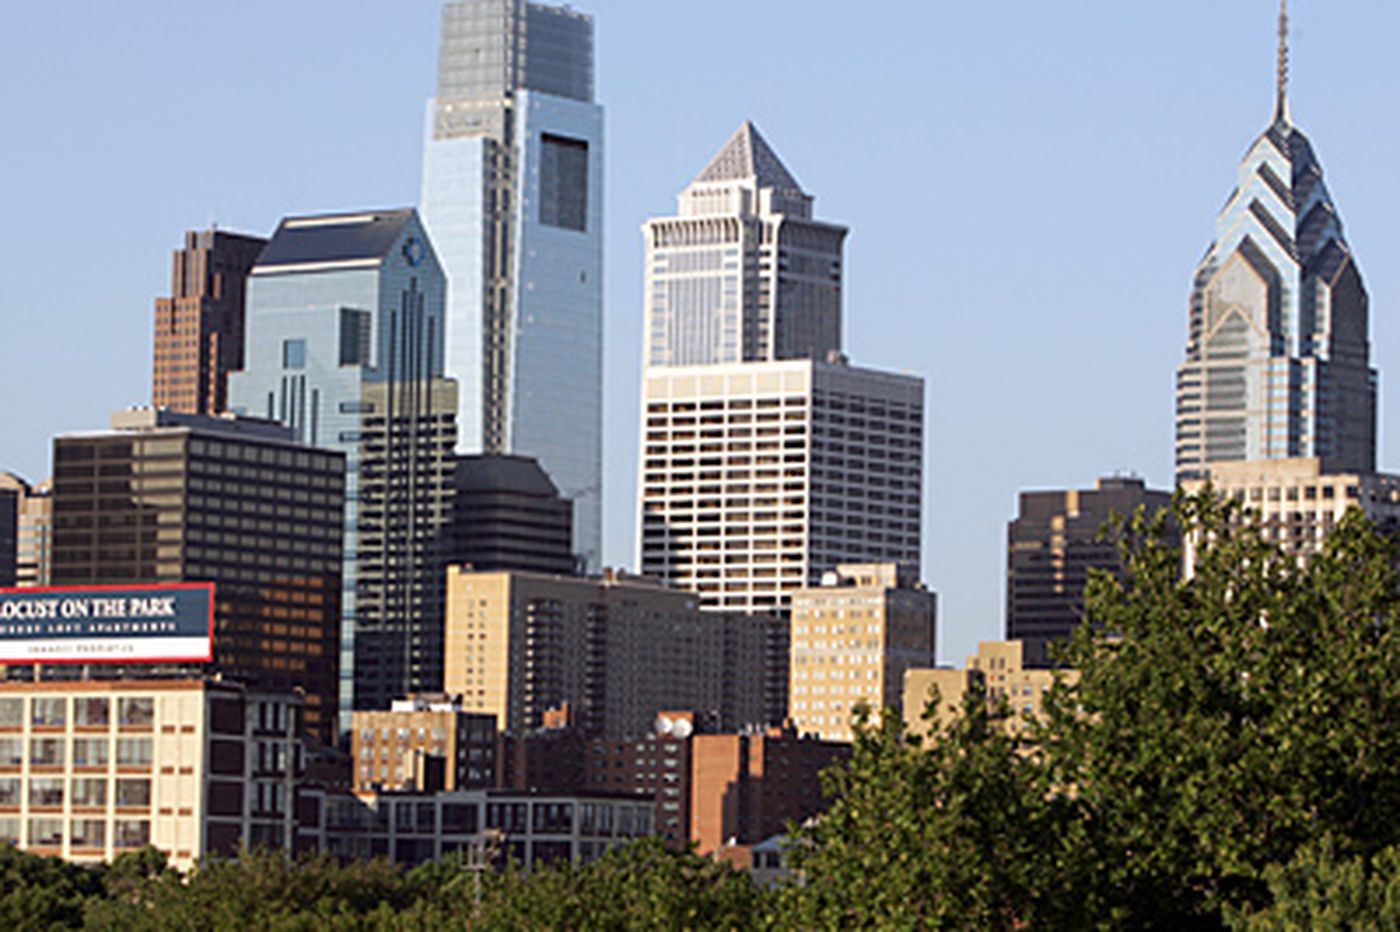 Comcast Center, Phila.'s tallest building, is clean-lined and dignified